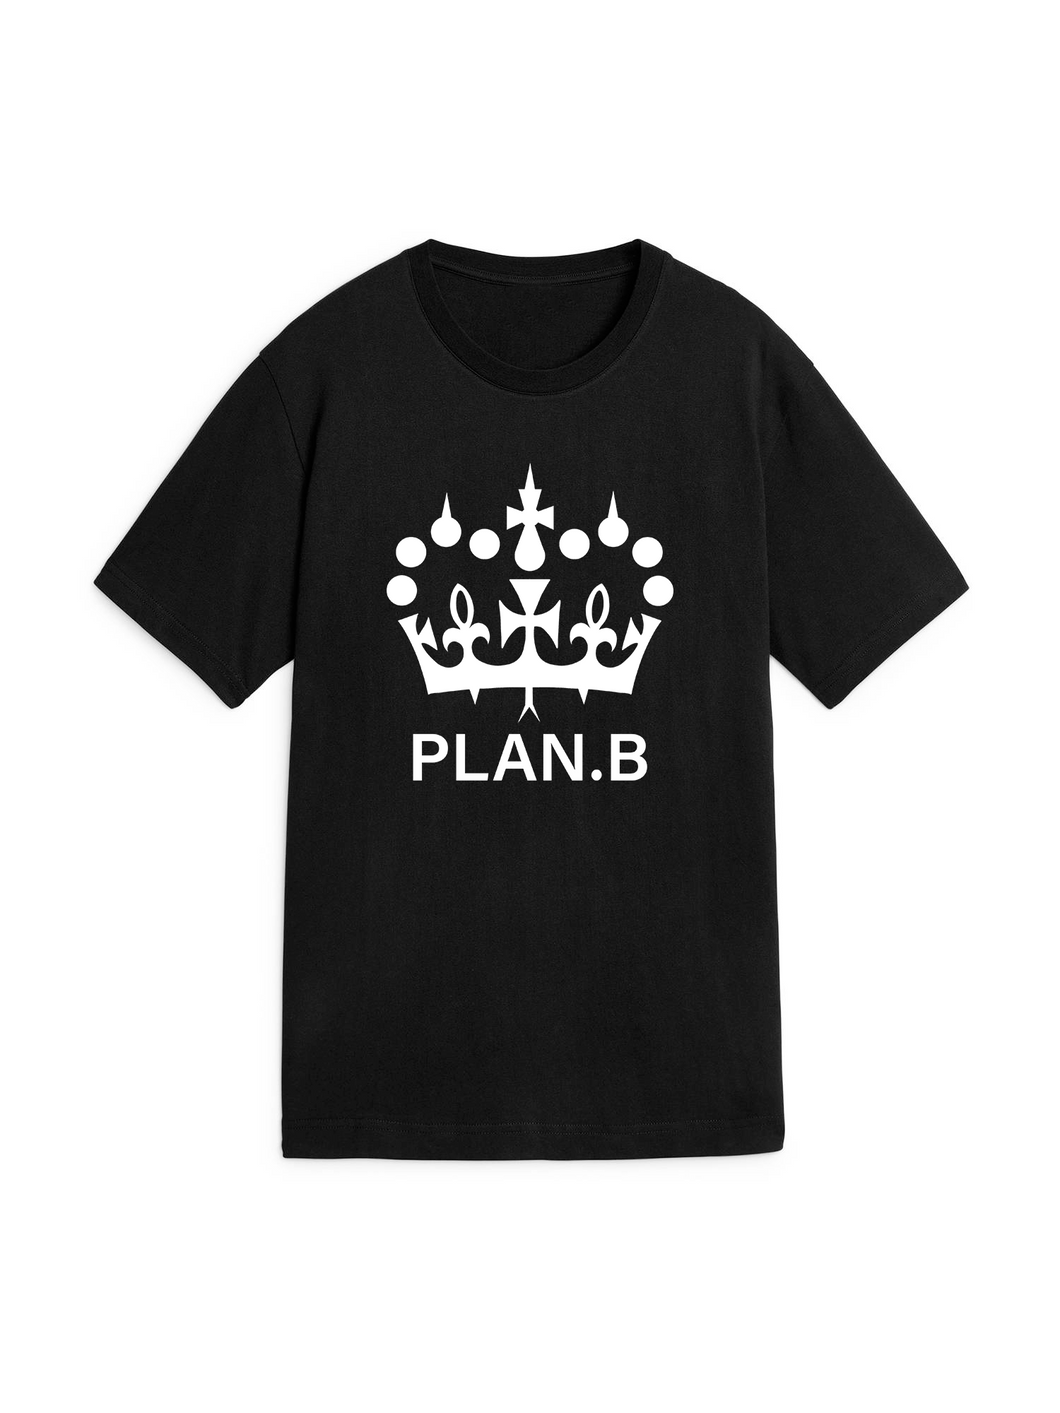 Limited Edition 'First Past The Post' Plan B 2019 General Election T-shirts